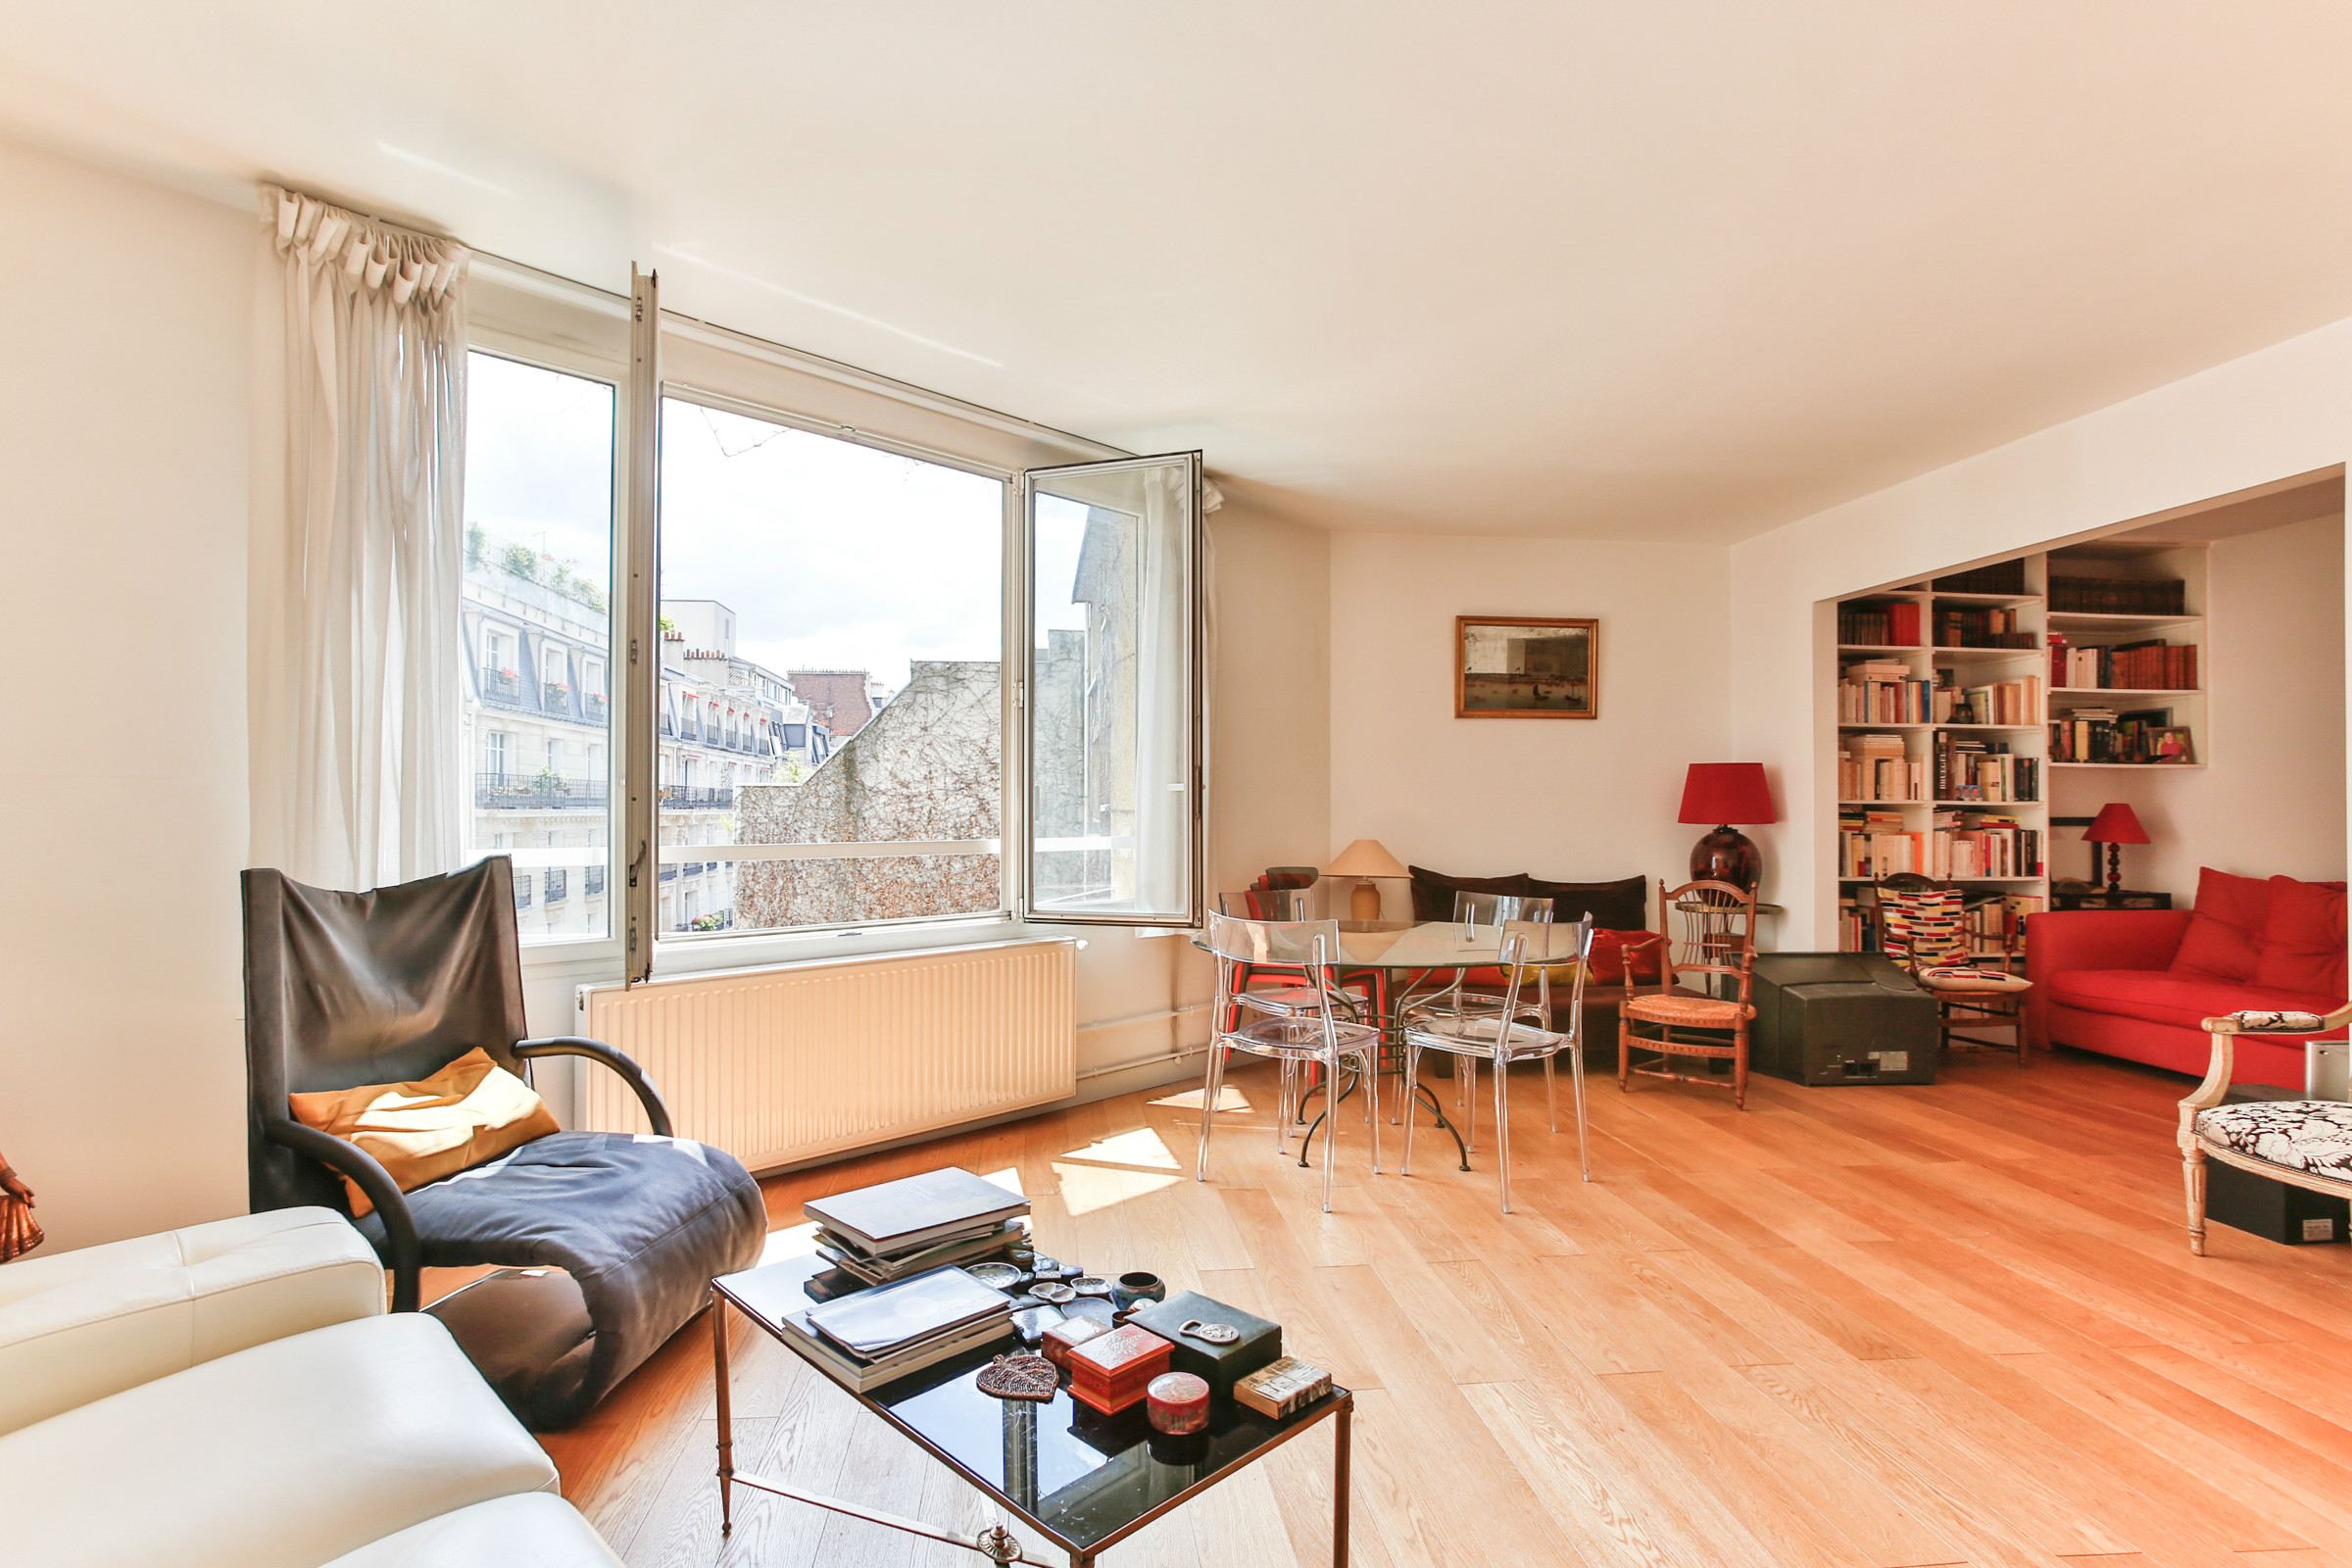 Property For Sale at Neuilly. Sablons. Apartment. Bright.